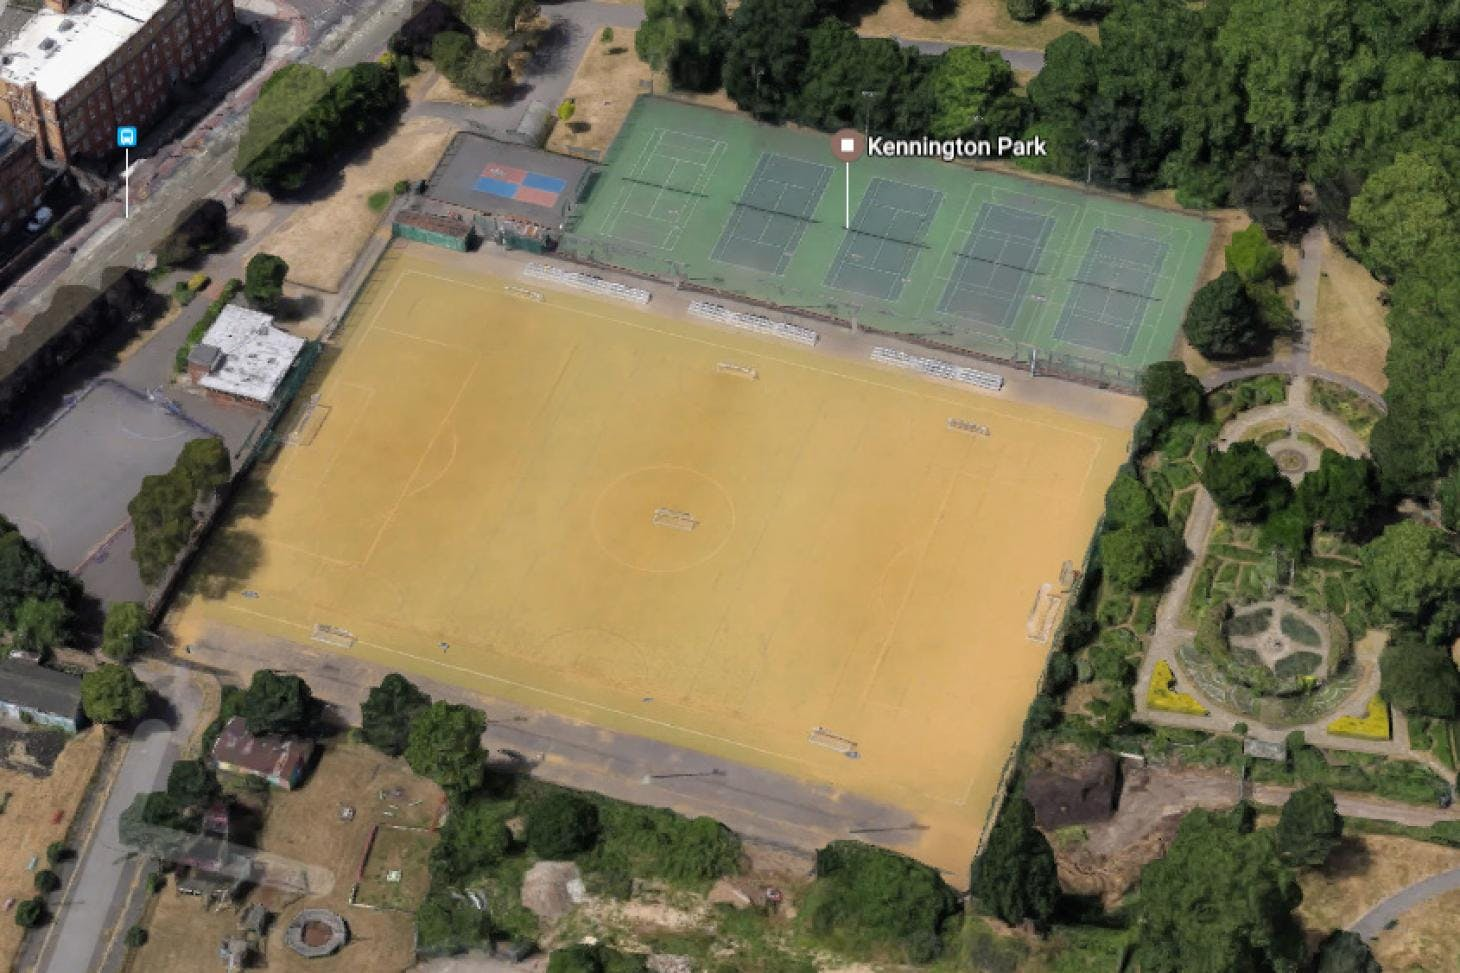 Kennington Park 11 a side | Astroturf football pitch